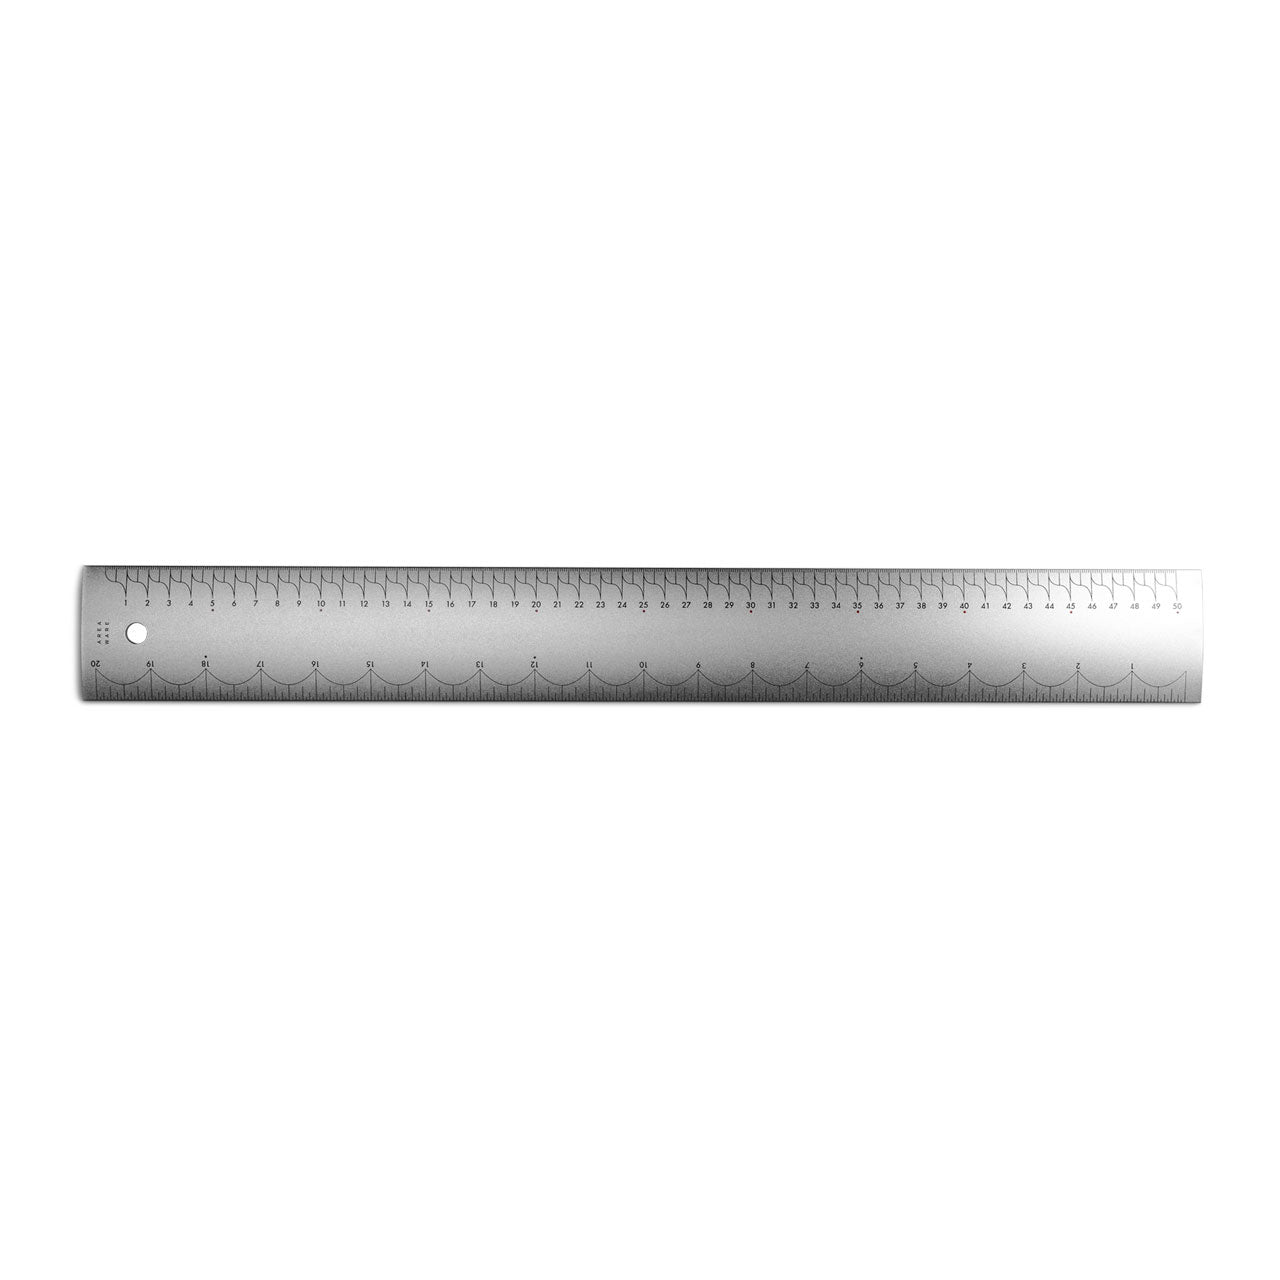 Areaware Aluminum Ruler